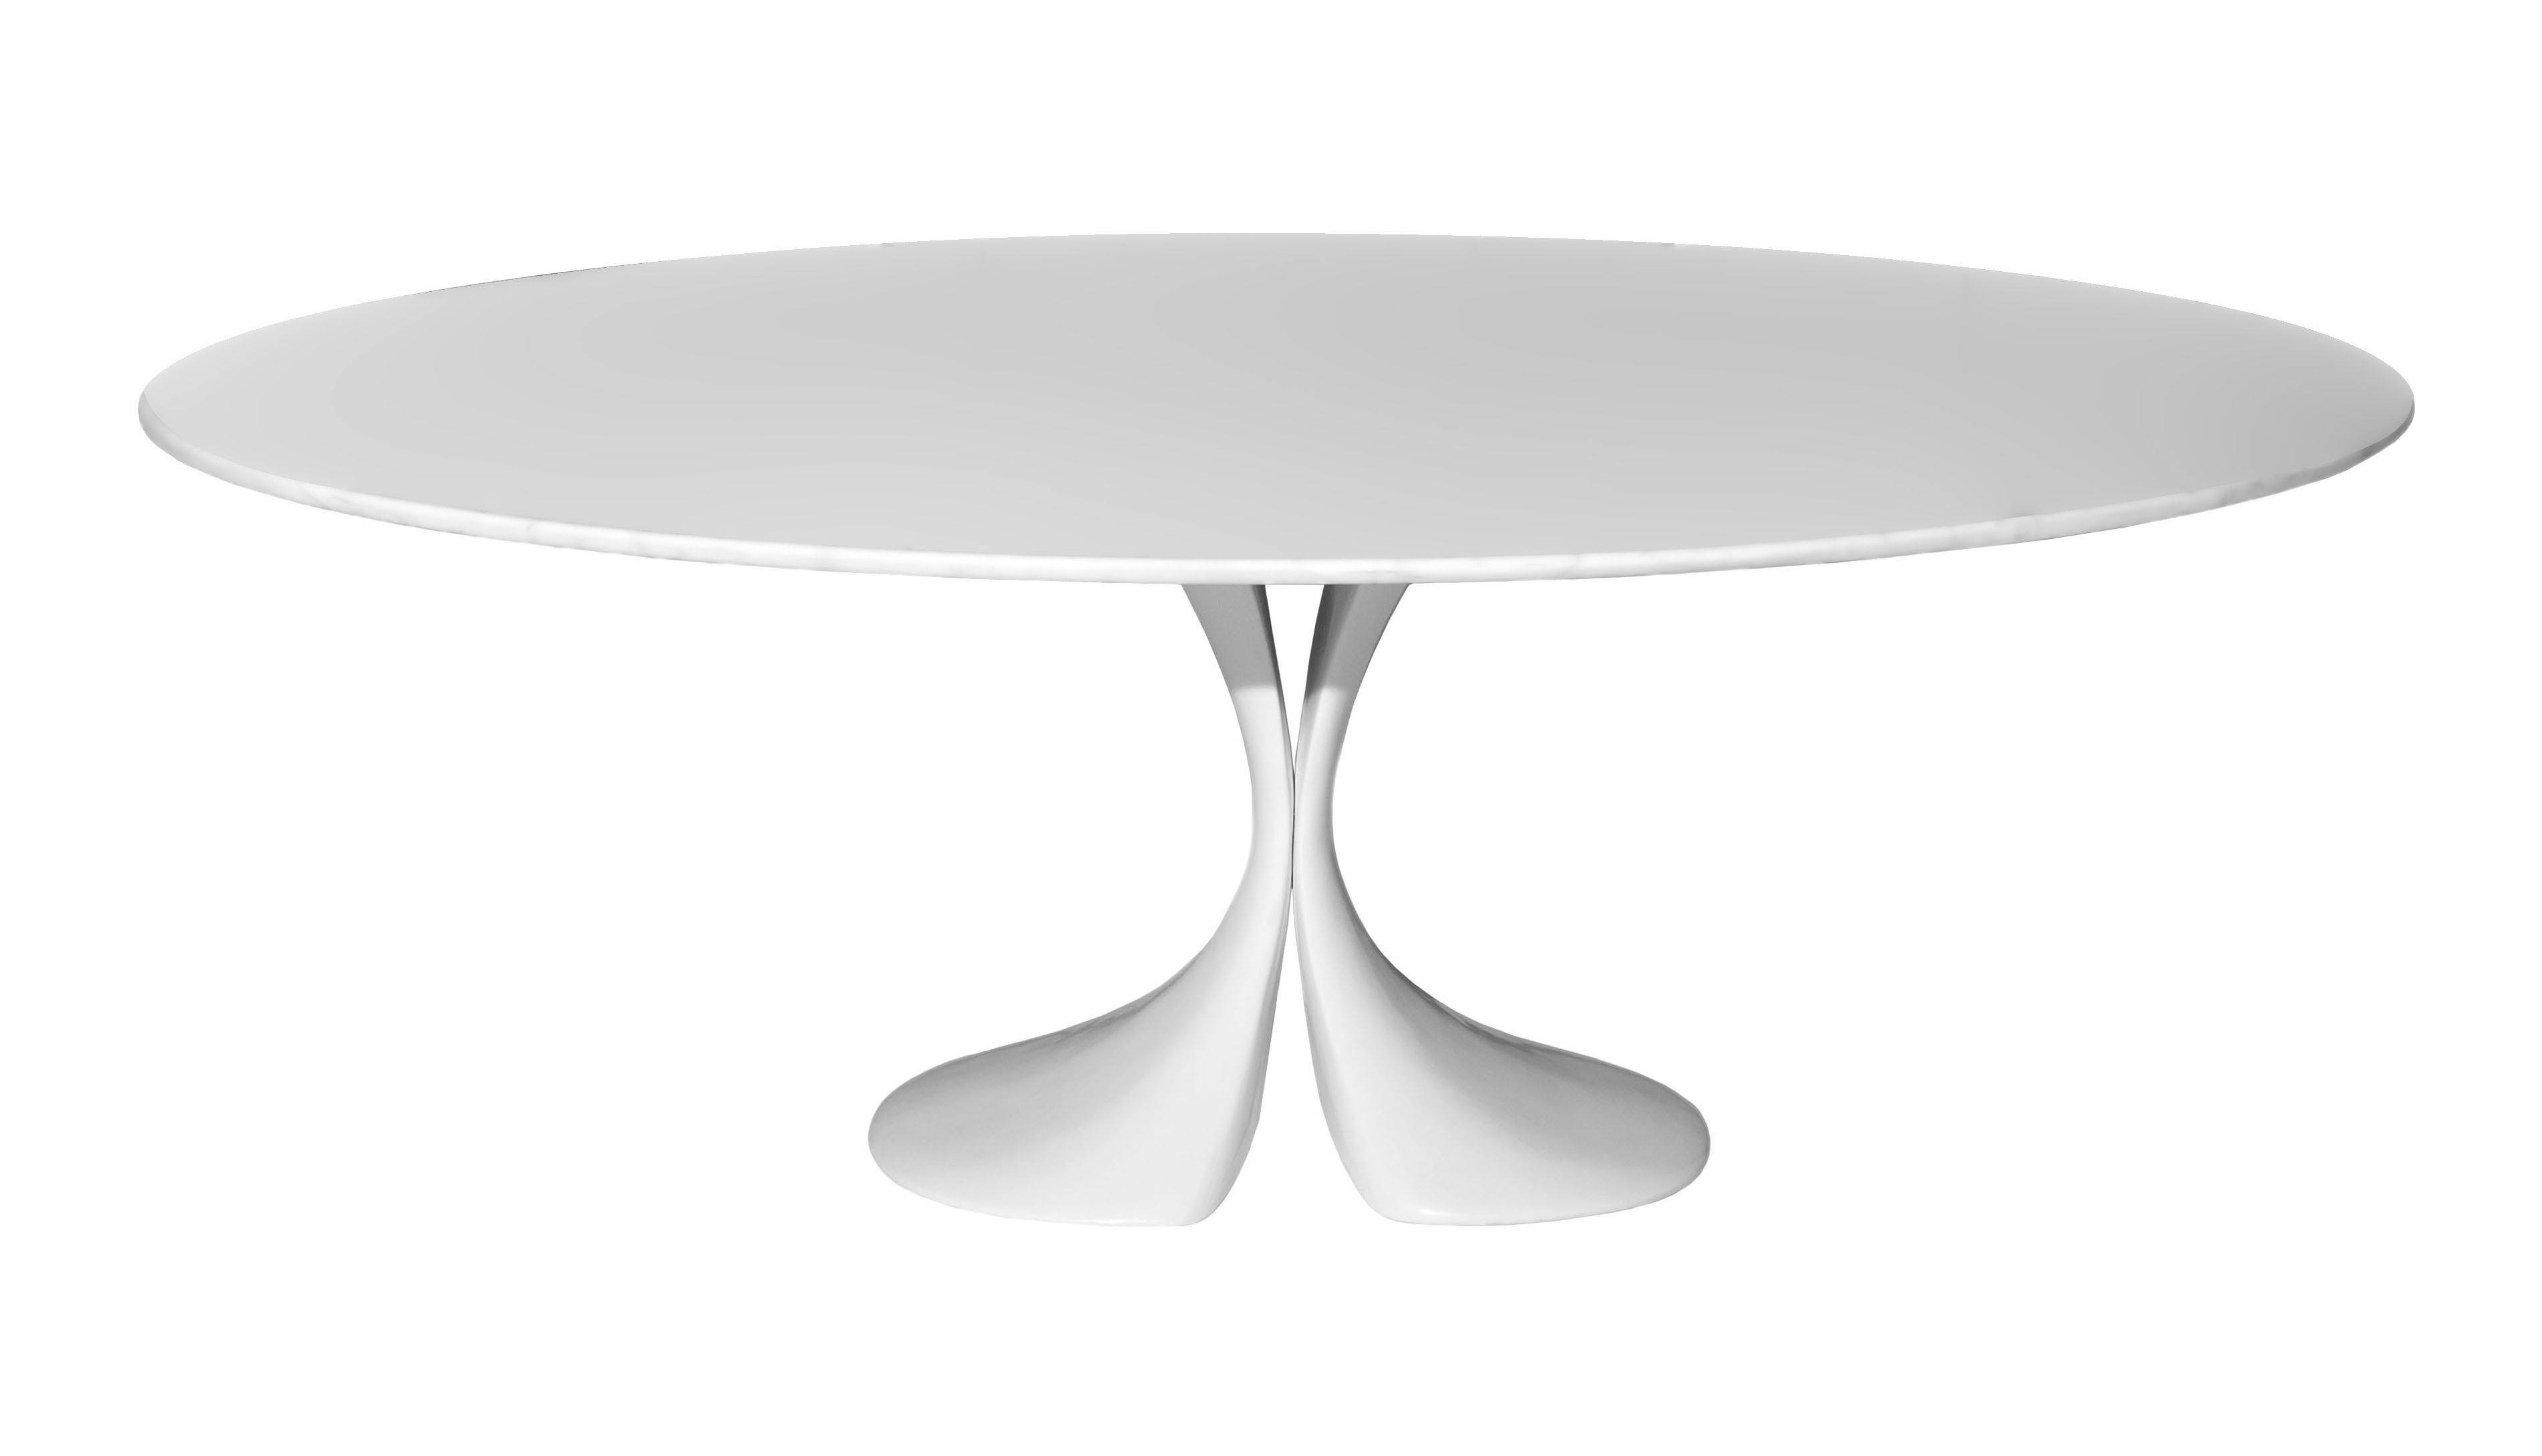 Furniture - Dining Tables - Didymos Table ovale - 180 x 126 cm - Cristaplant top by Driade - White crystalplant top - Cristalplant